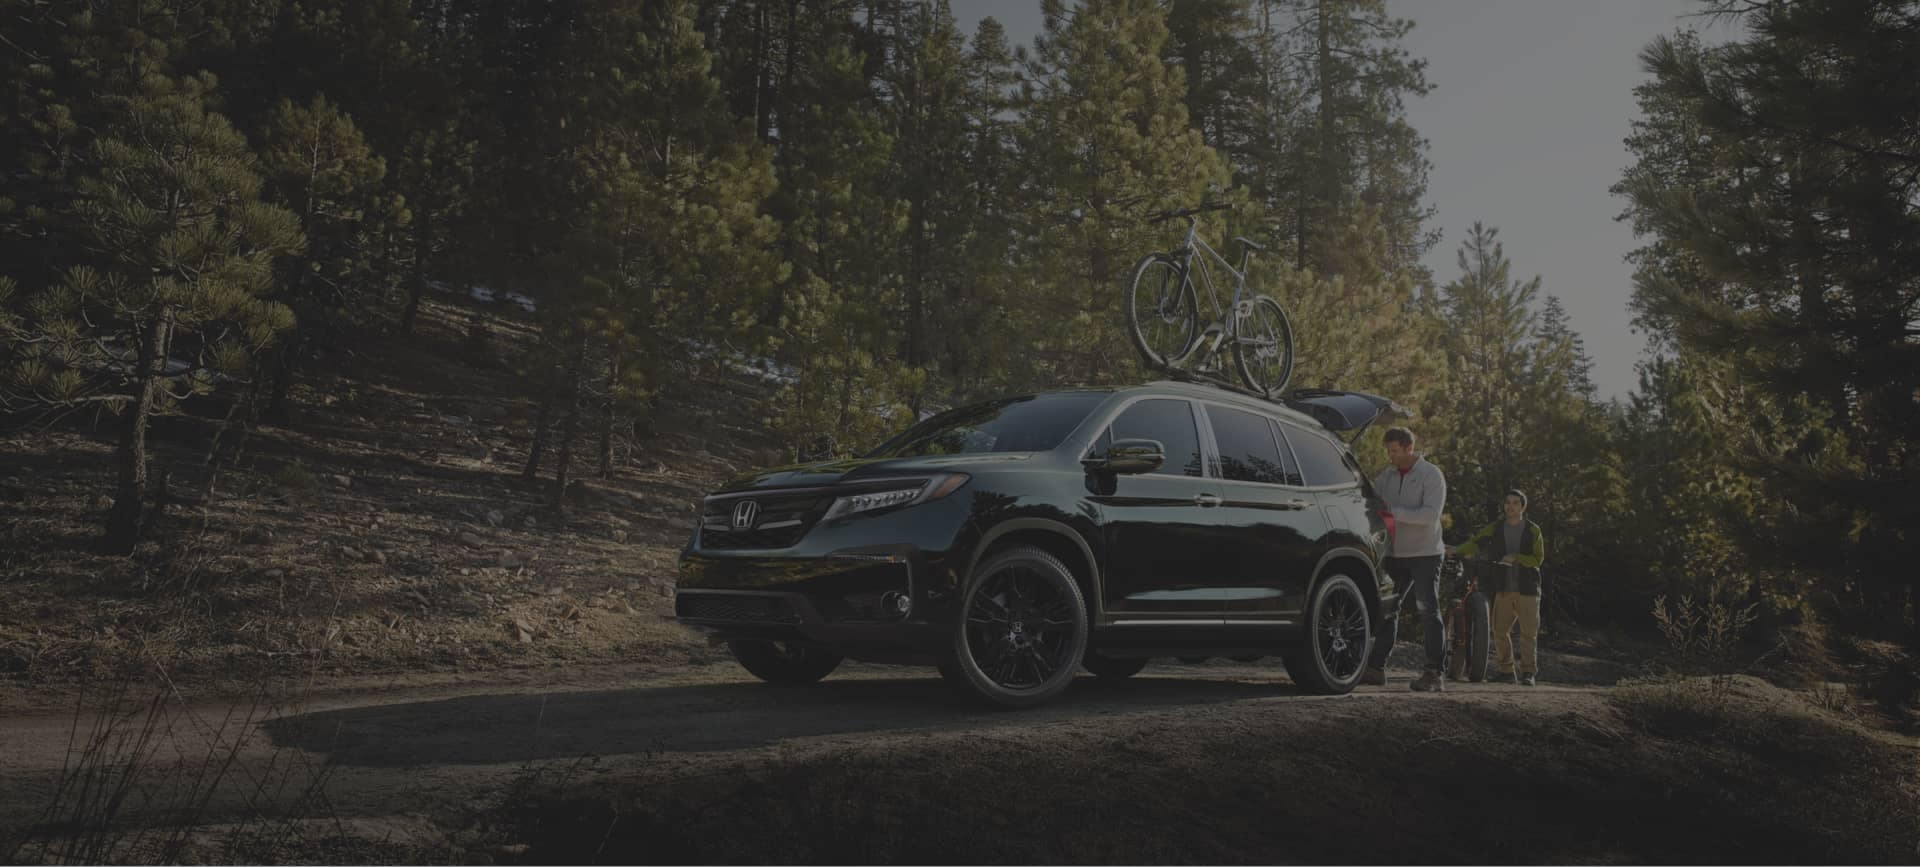 two men loading trunk of Honda SUV with bike on top on a dirt path